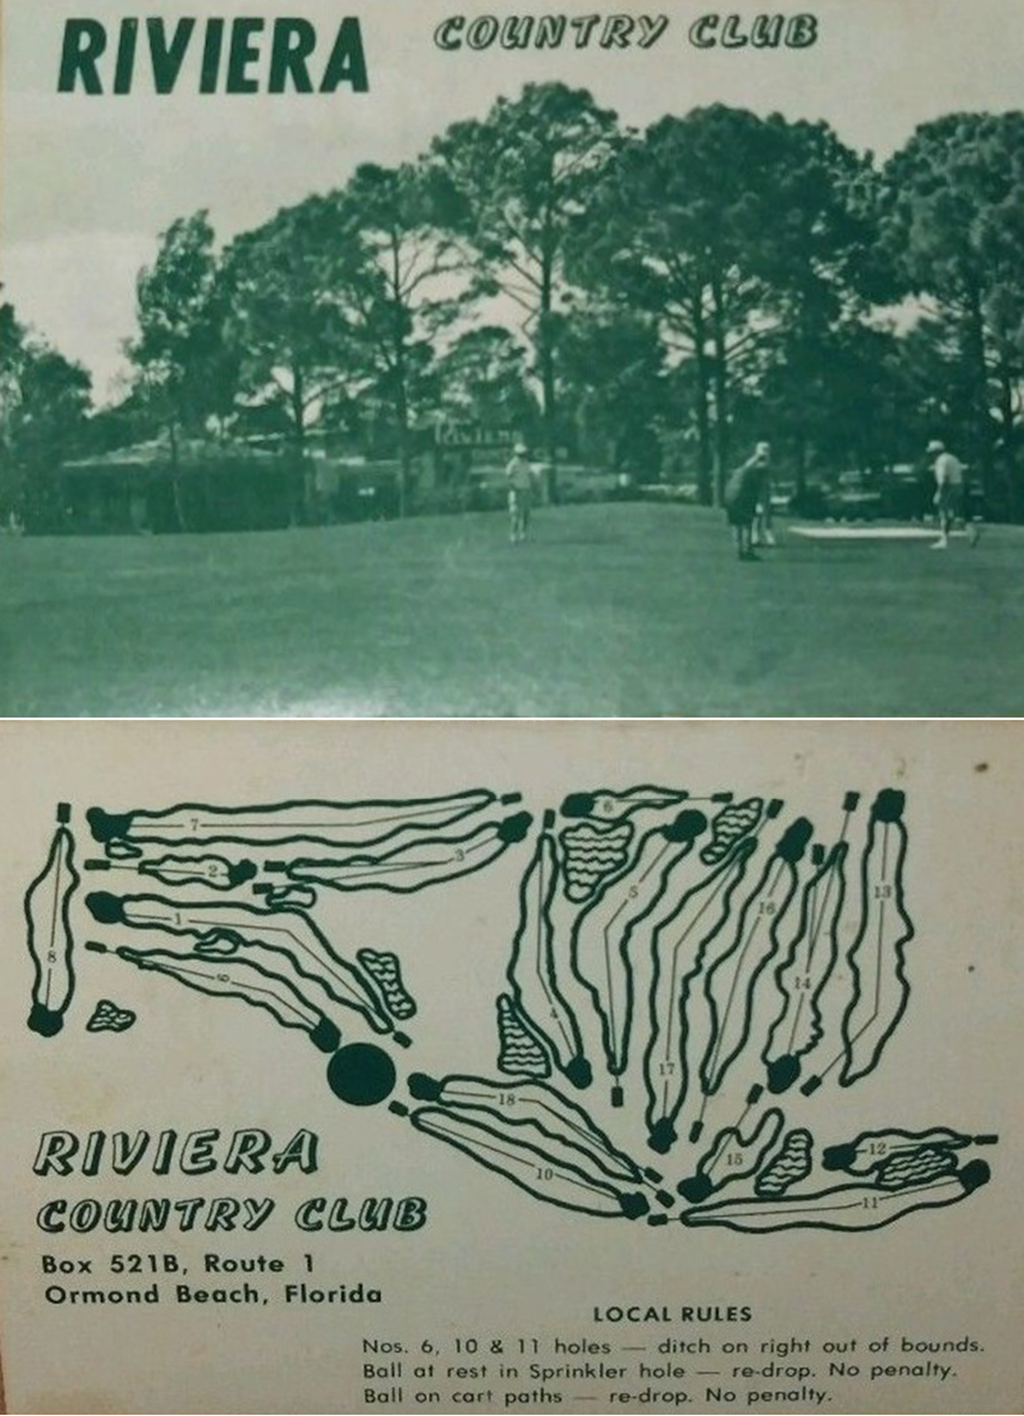 Riviera Country Club Scorecard From 1974